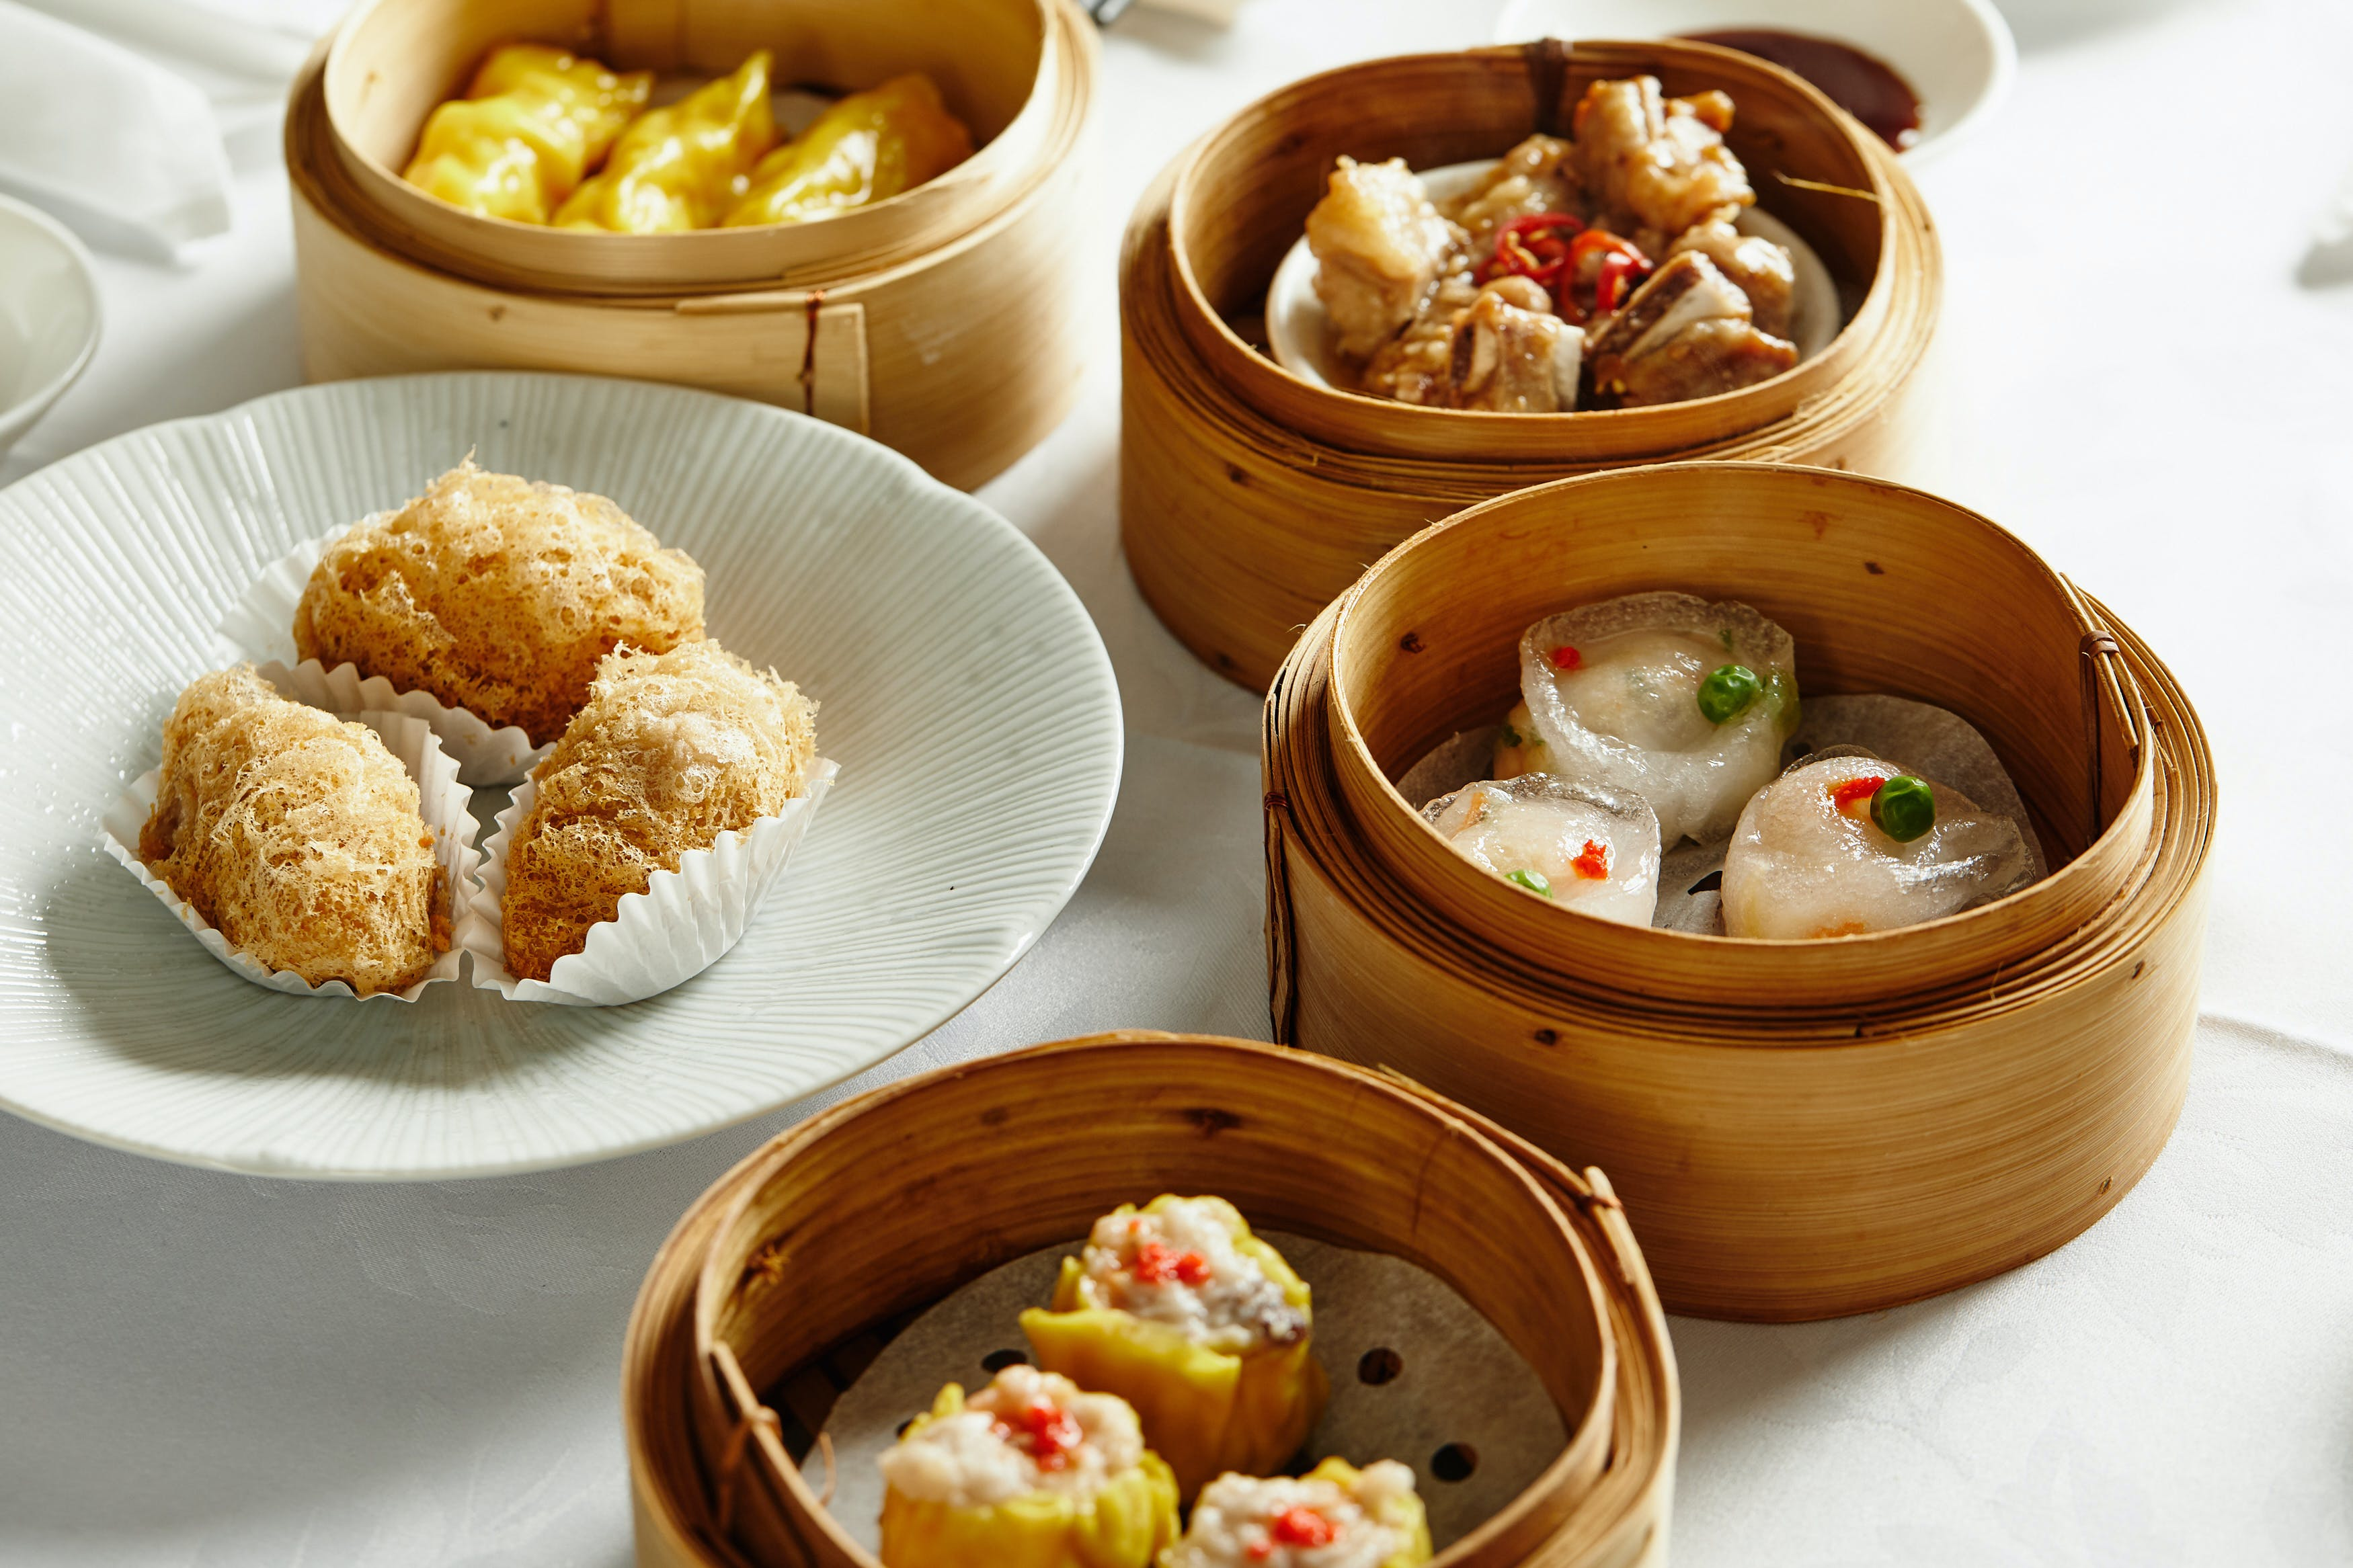 We Check Out Melbourne's Coeliac-Friendly, All-You-Can-Eat Yum Cha Spot